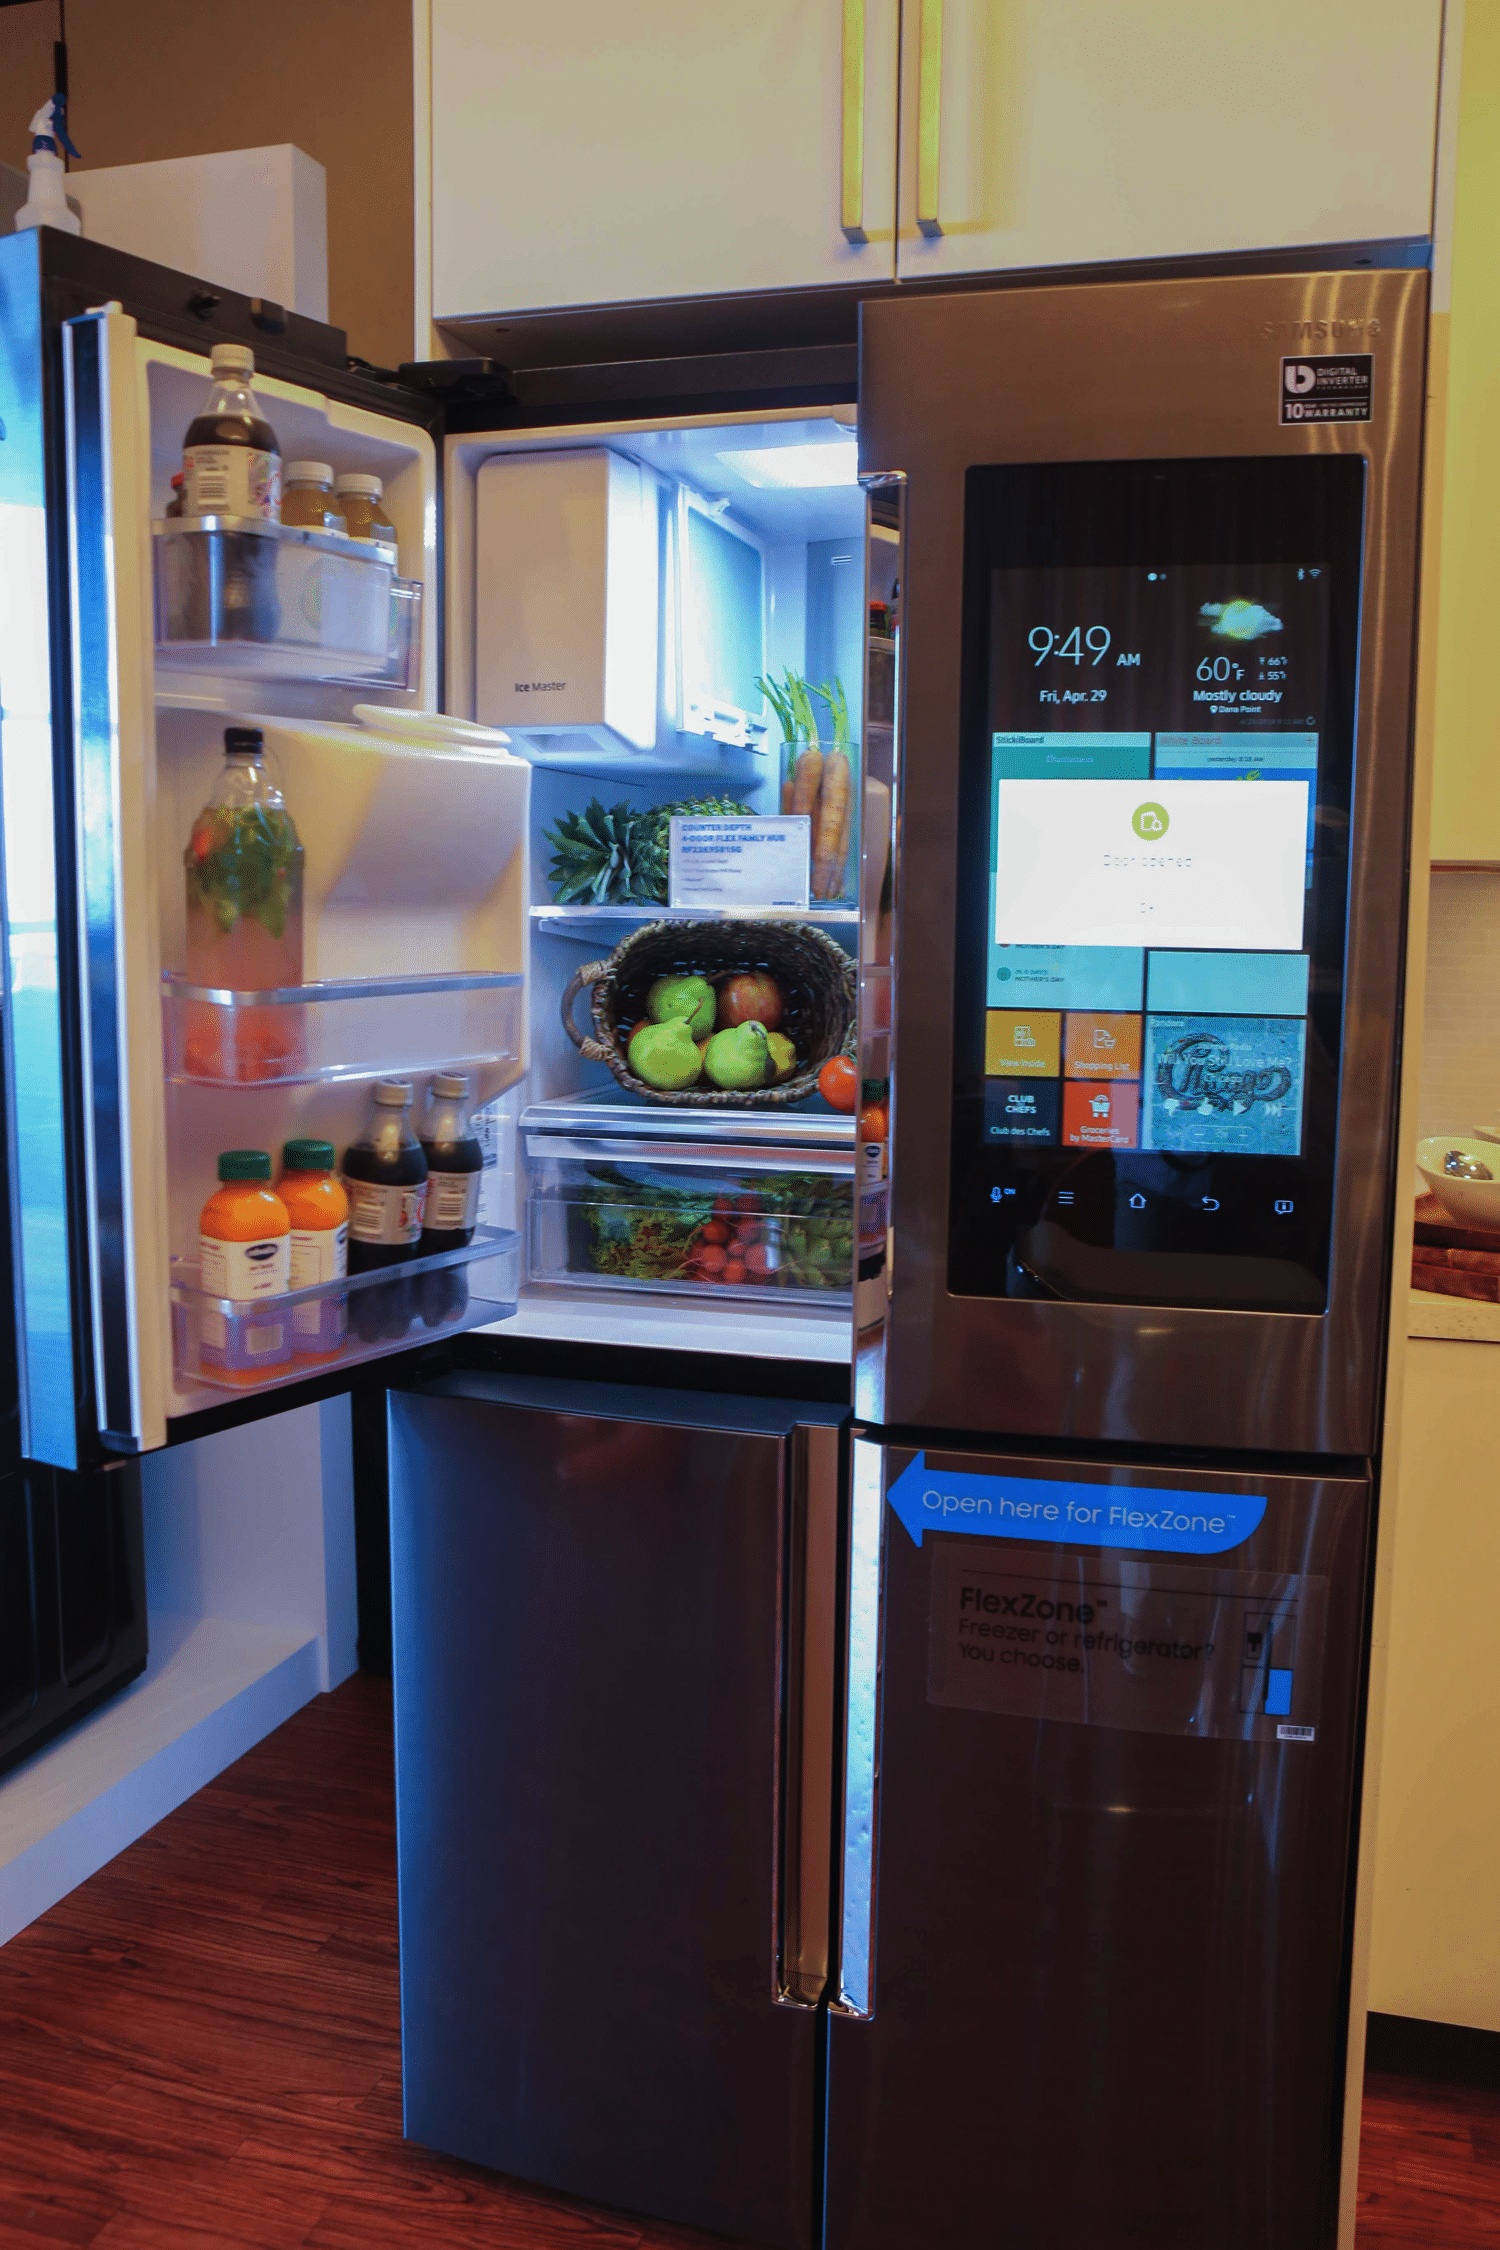 New Samsung Appliances At Best Buy